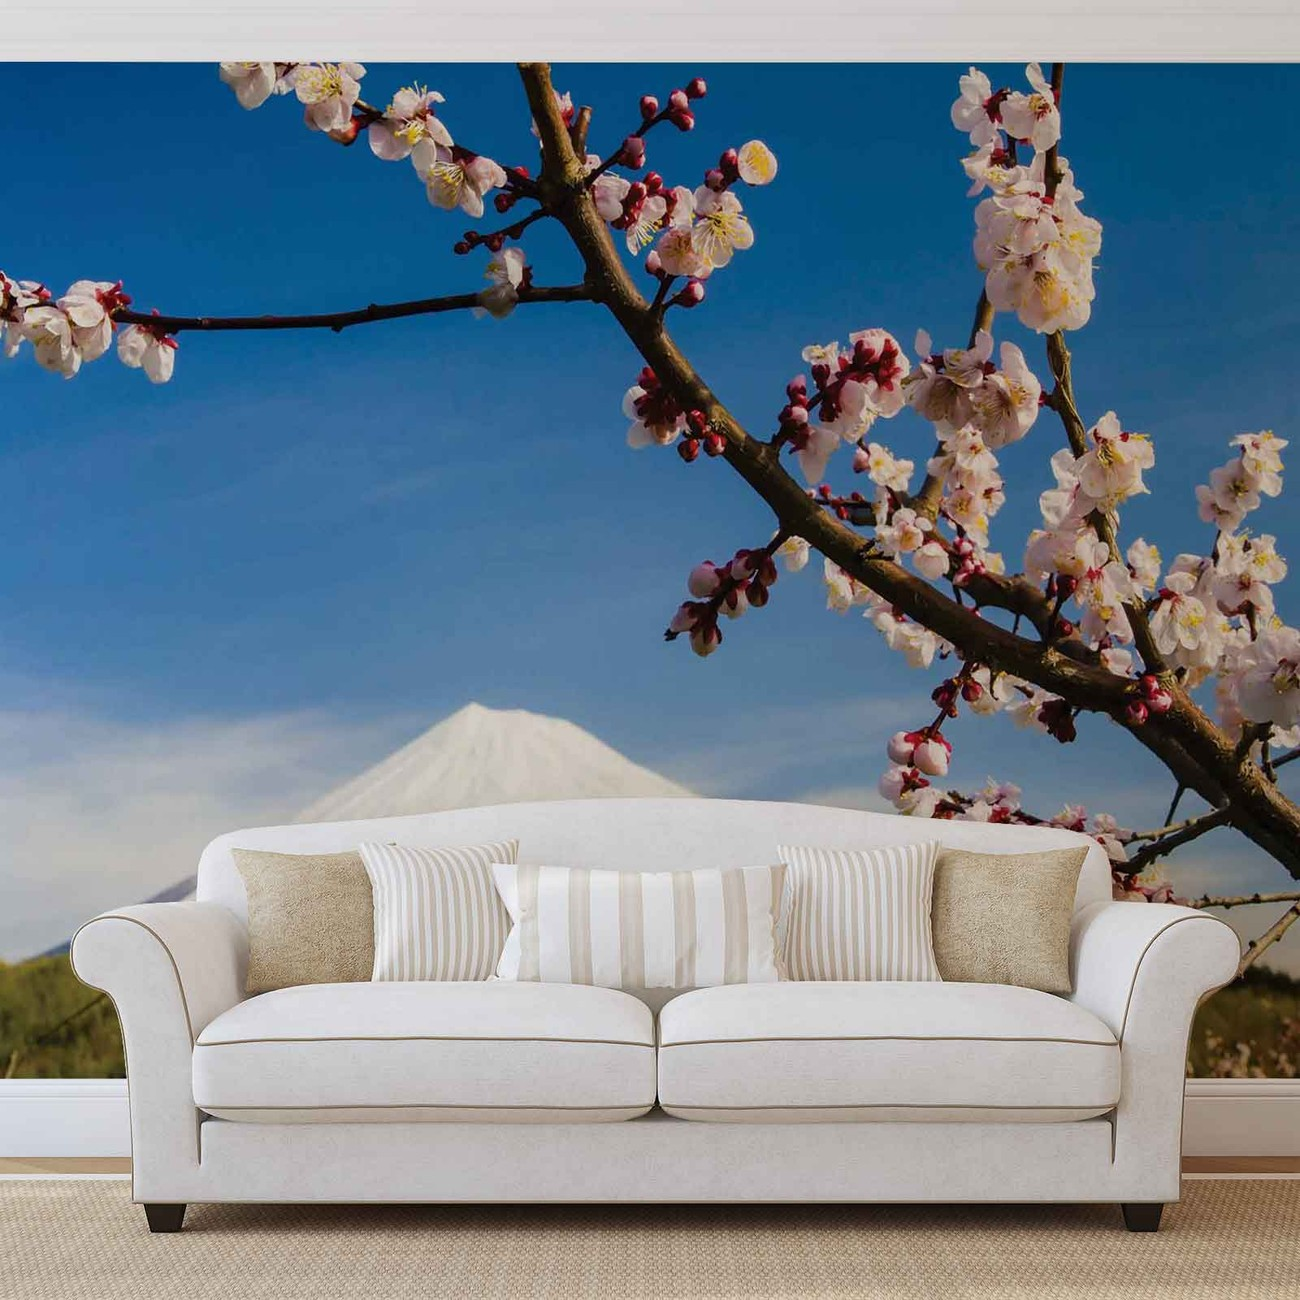 flowers mountain snow nature wall paper mural buy at europosters. Black Bedroom Furniture Sets. Home Design Ideas